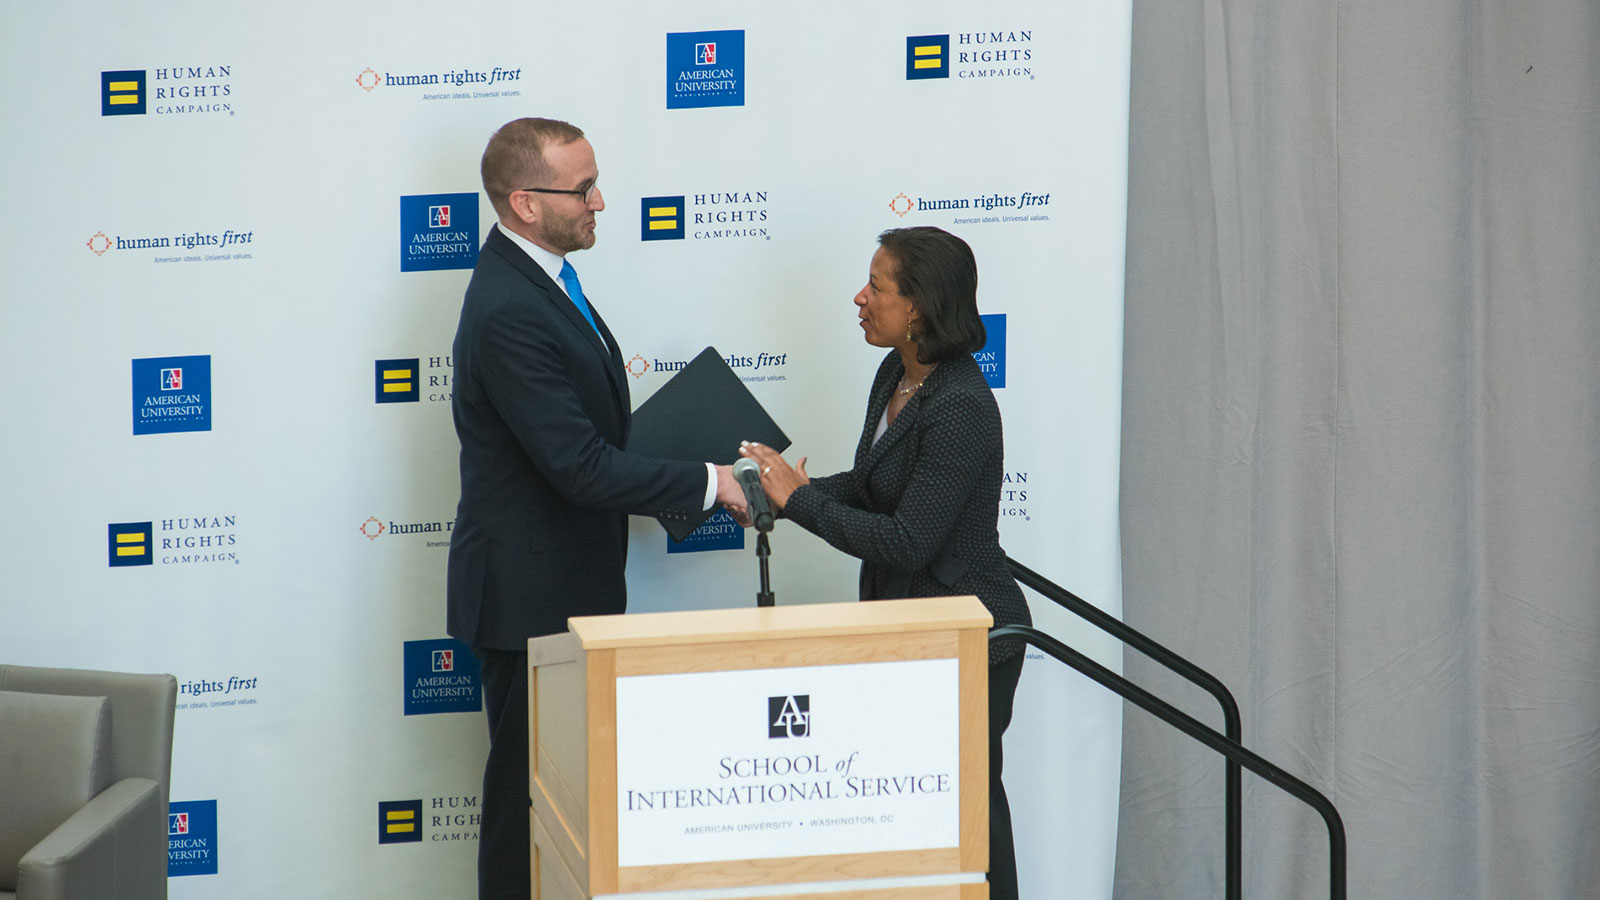 HRC President Chad Griffin Introduces Ambassador Susan Rice Ahead of  Historic Speech on LGBTQ Rights